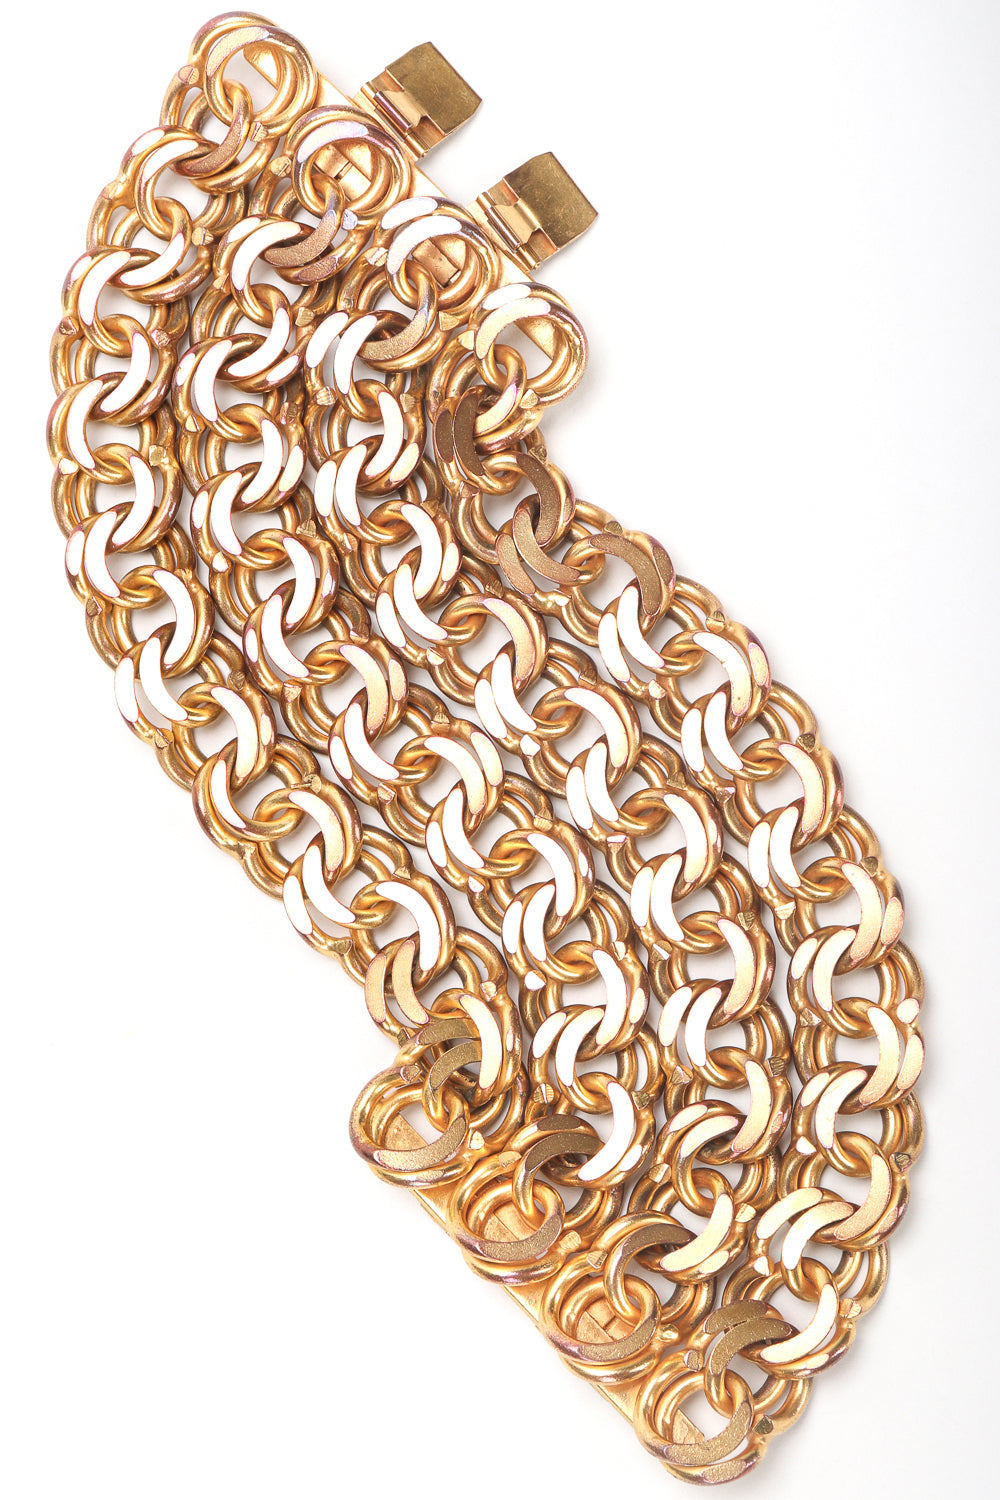 Recess Designer Consignment Vintage Isabel Canovas Wide Chain Cuff Bracelet Los Angeles Resale